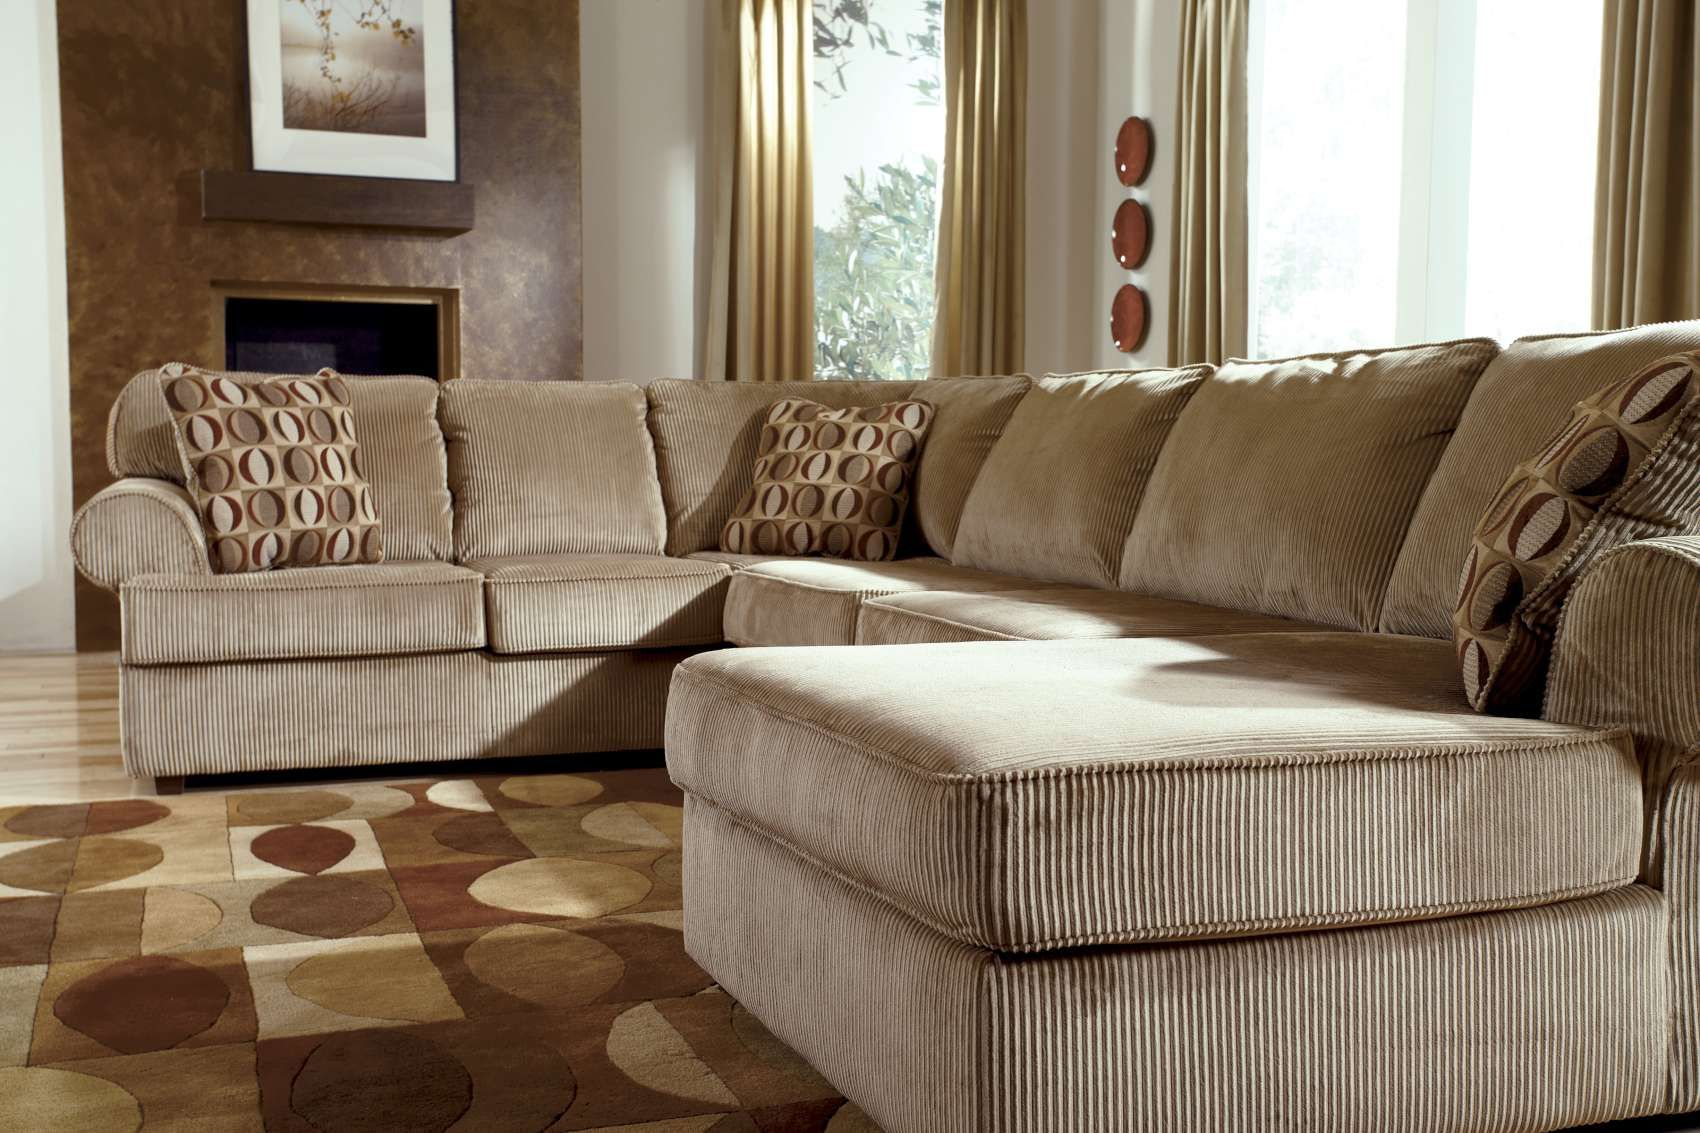 Corduroy Sofas Ashley Furniture Yahoo Image Search Results Family Living Rooms Furniture Sectional